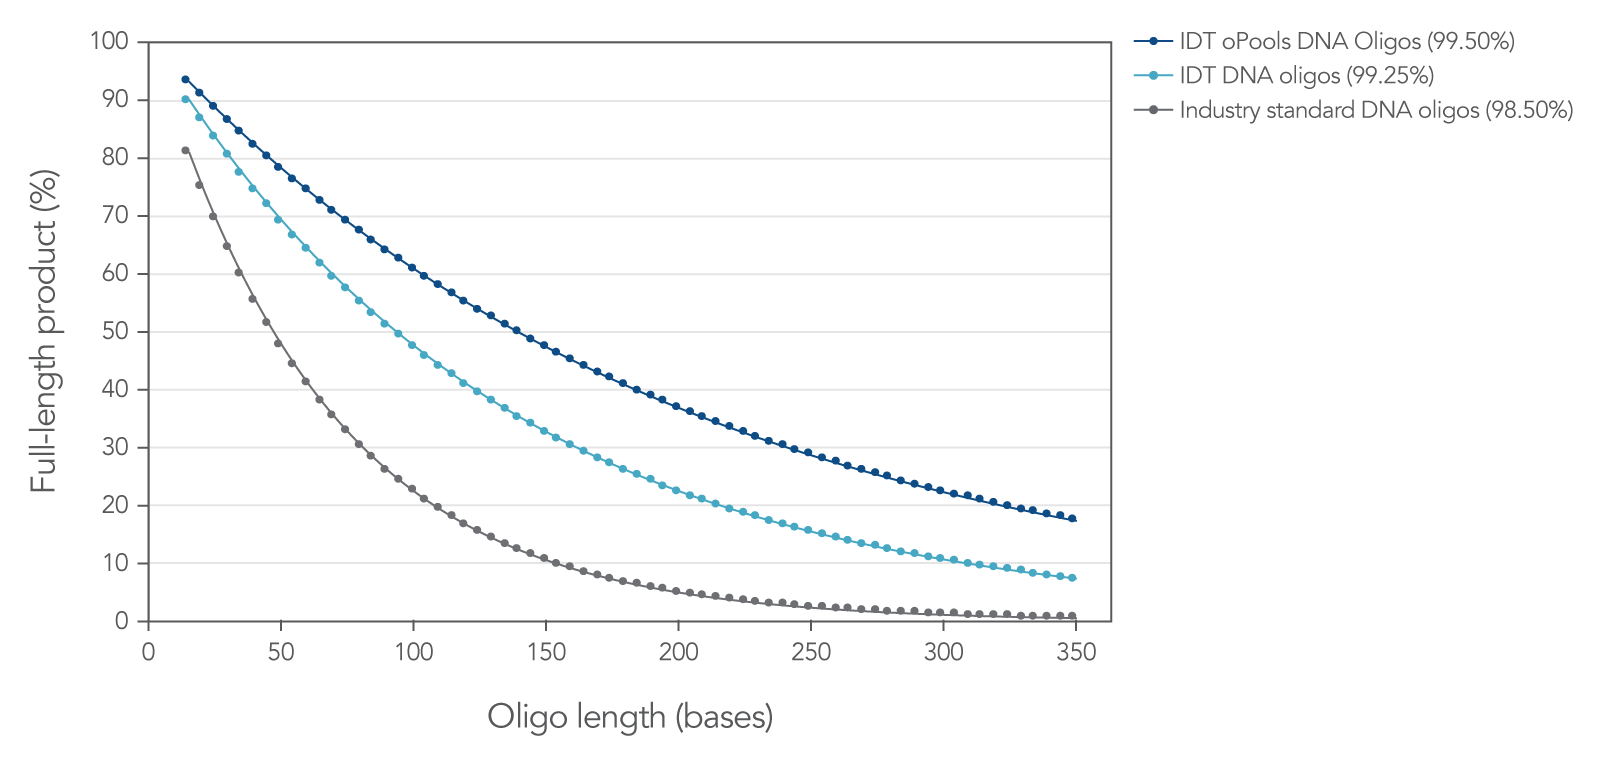 High coupling efficiency means increased levels of full-length oligos